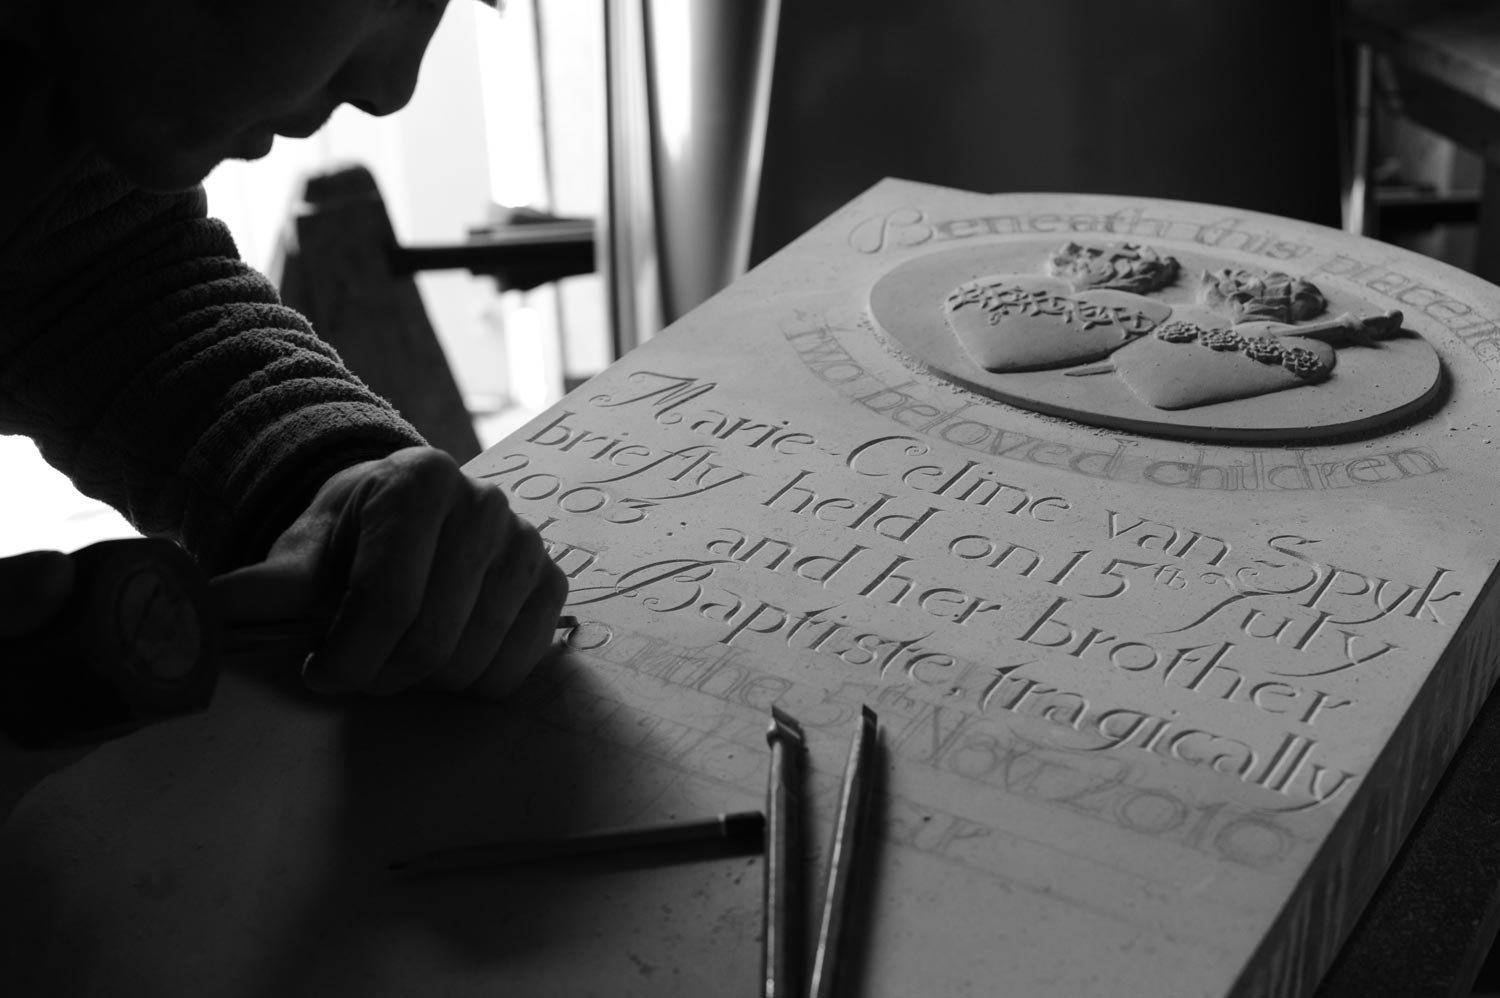 gillick-letter-cutting-lettering-stone-web.jpg